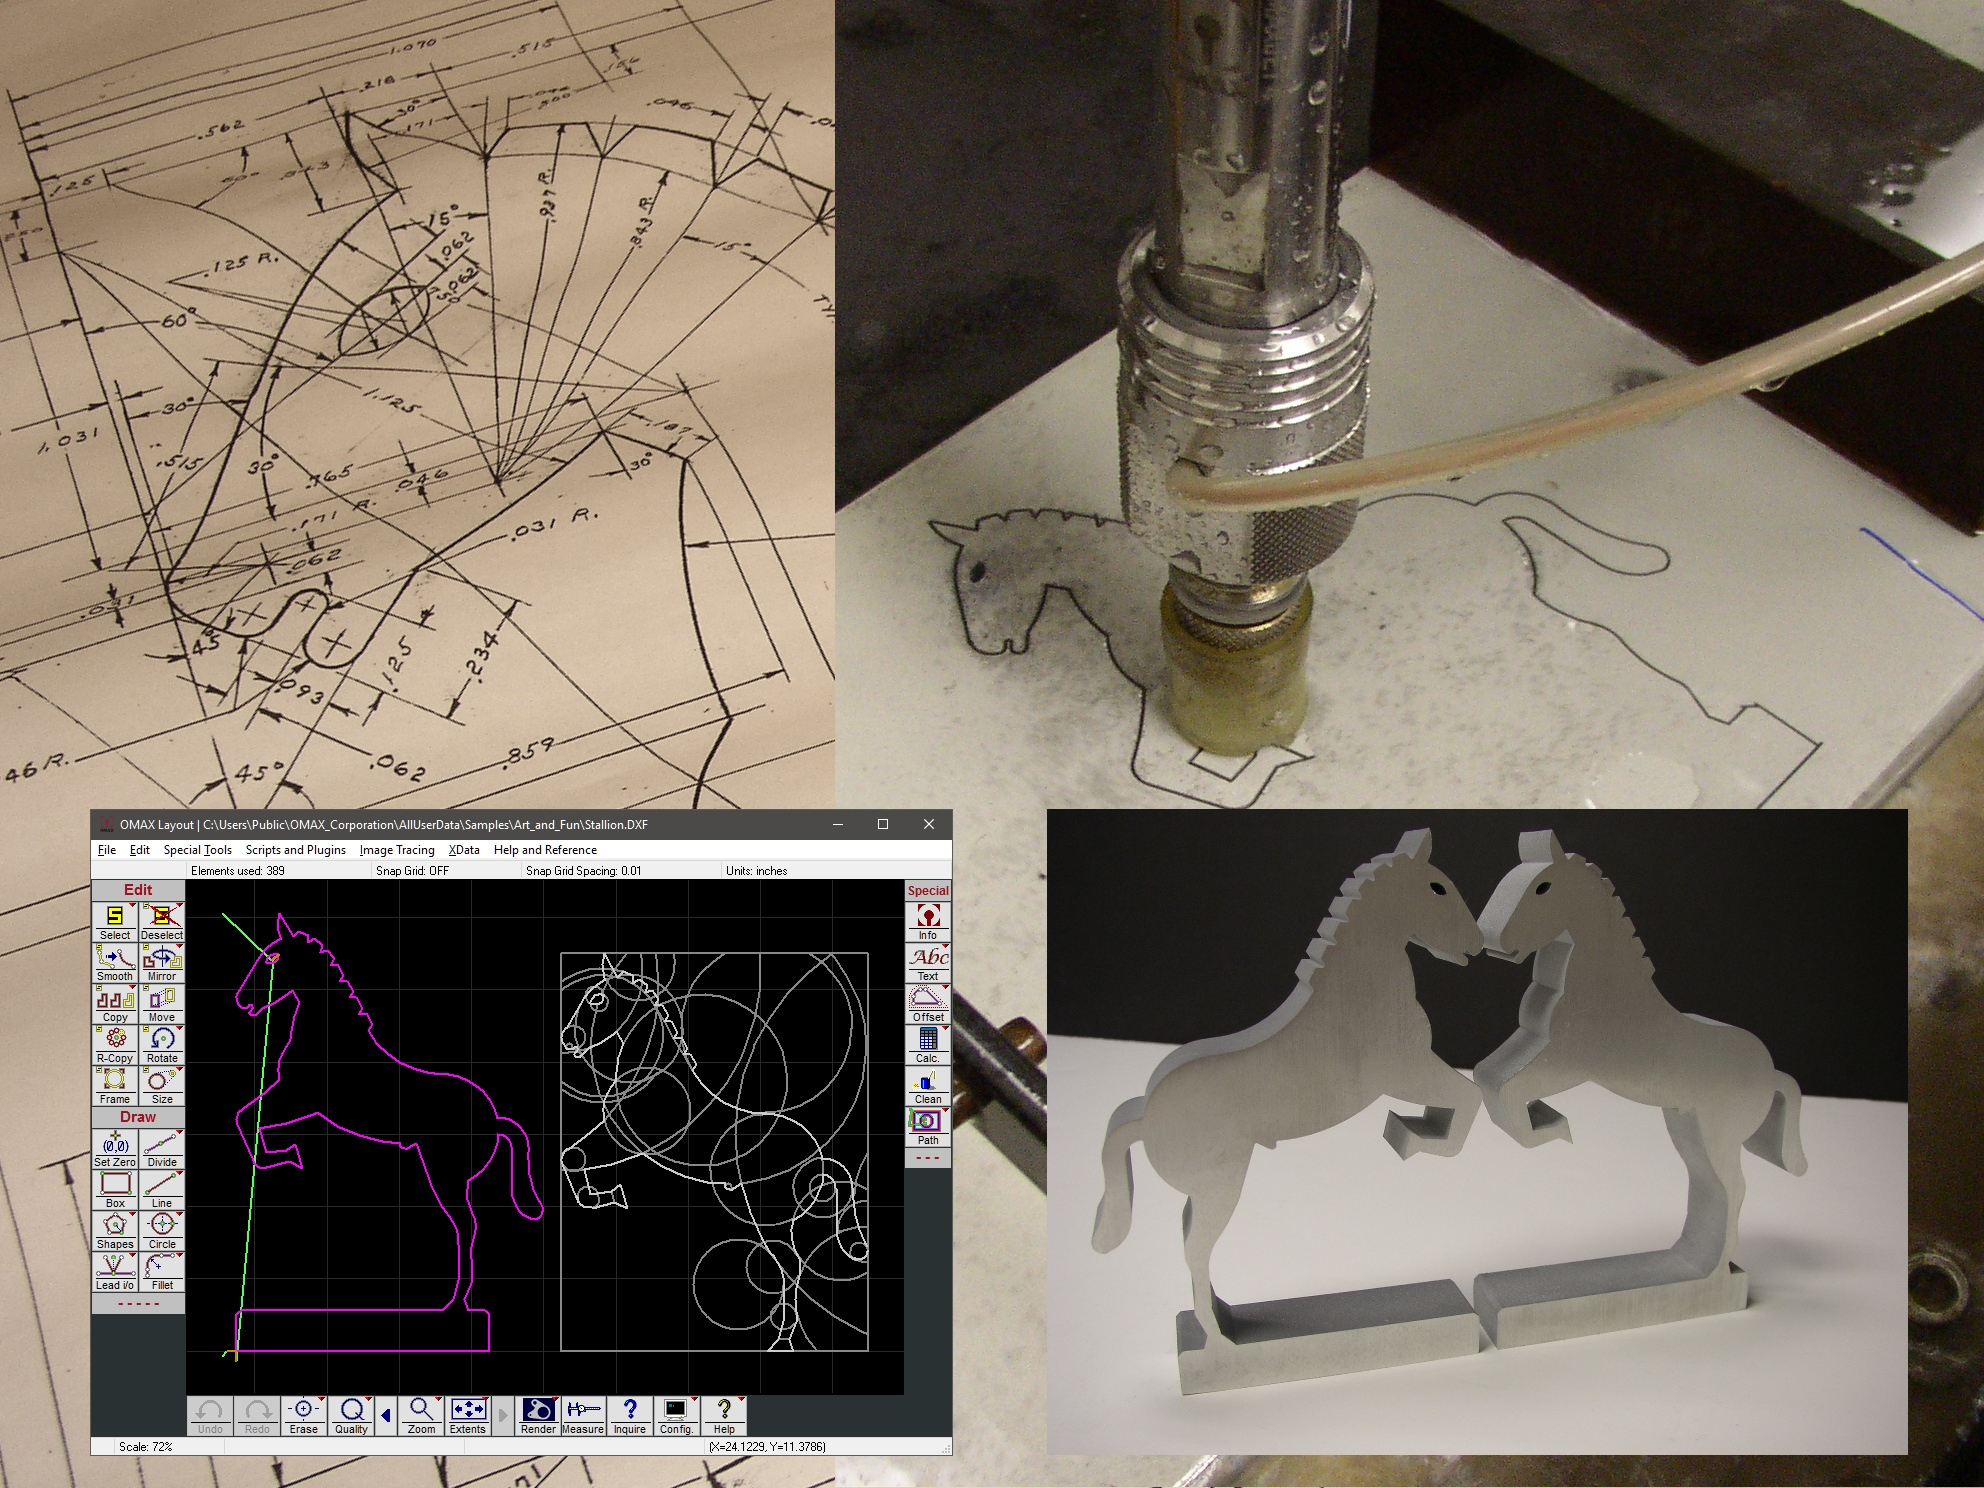 Waterjets org – The most complete waterjet resource on the web